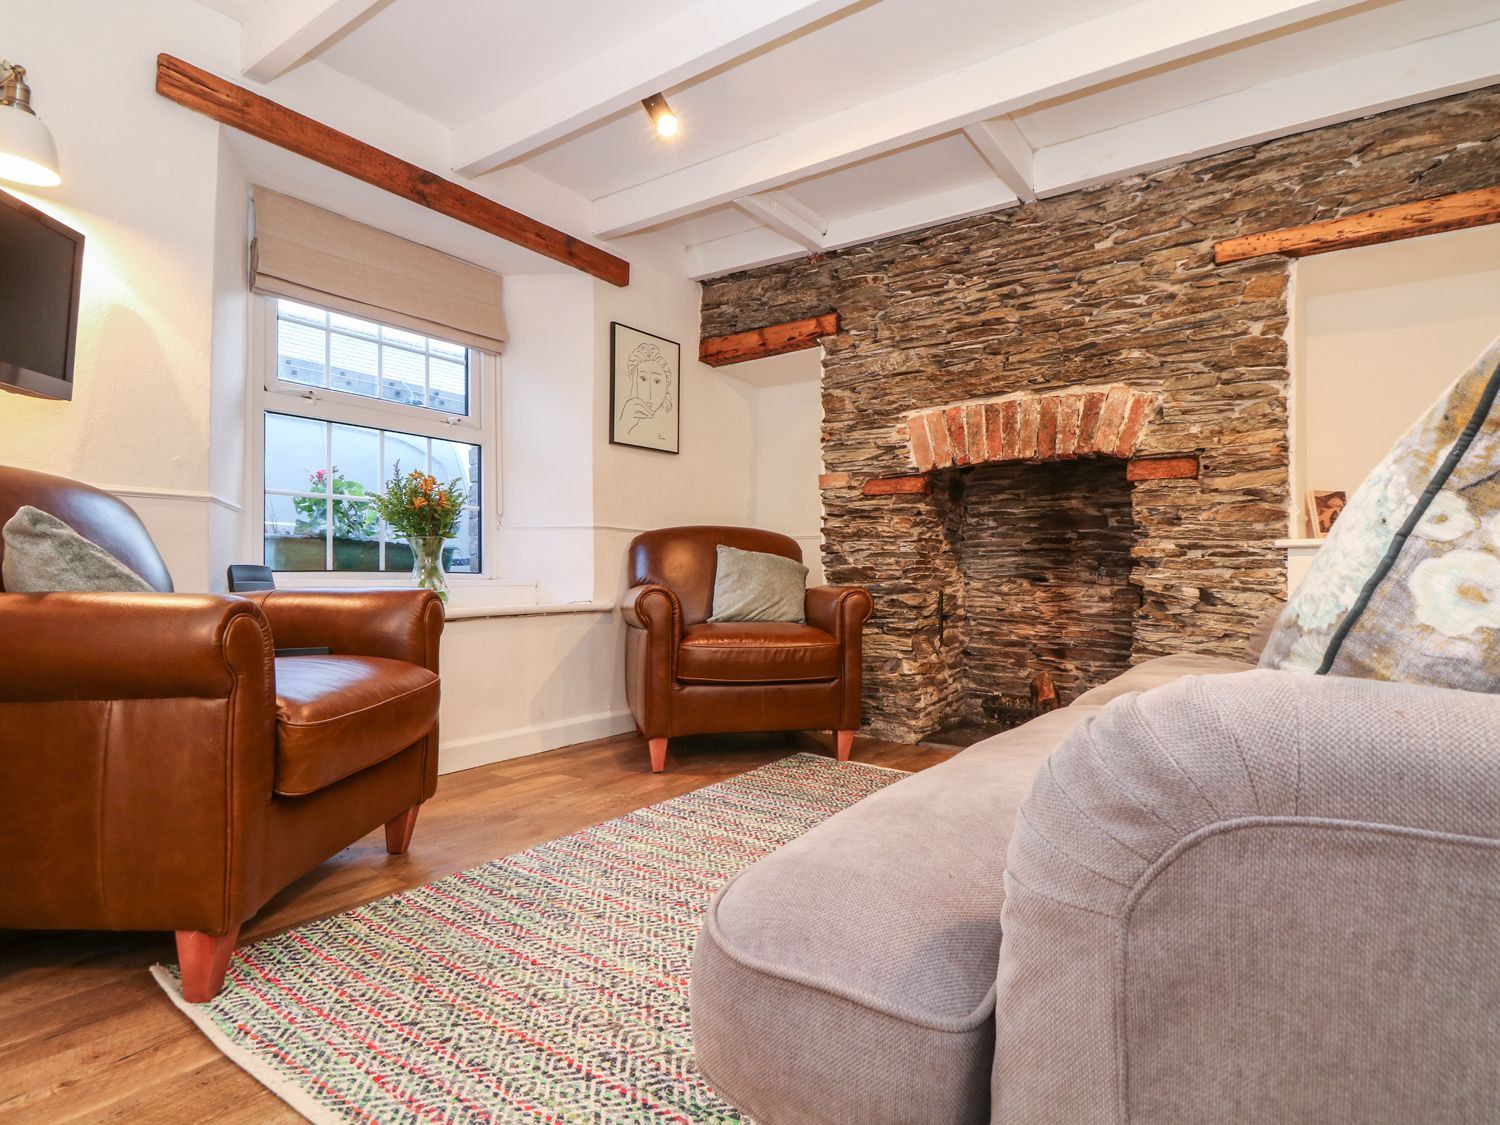 Gwent Cottage, nr Padstow - Cornwall - 965177 - photo 1